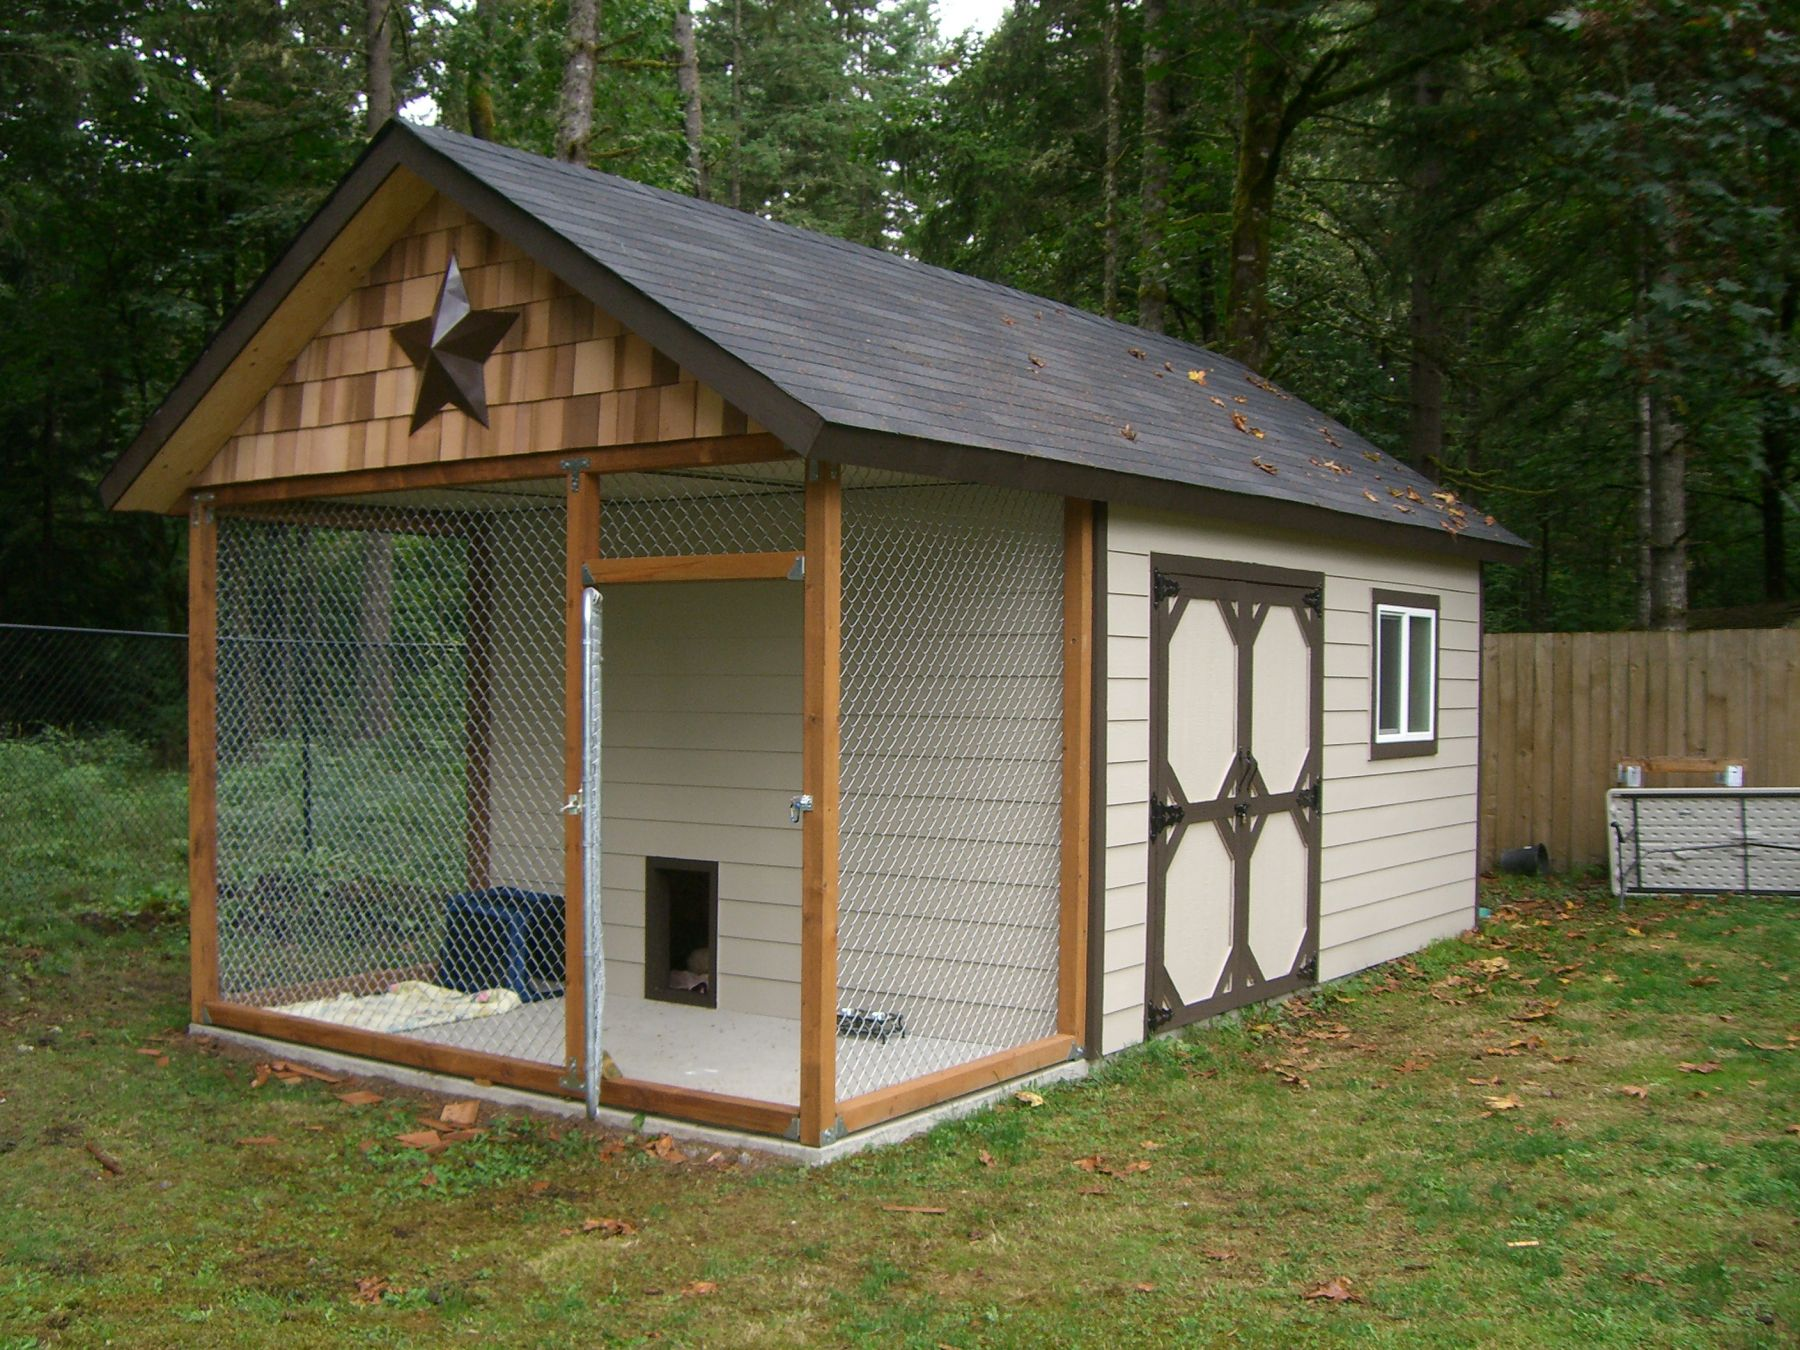 Dog House Shed & Kennel Design Ideas & Tips | Shed Liquidators on dog kennel designs for two dogs, dog houses for multiple dogs, dog houses for big dogs, mutiple dog house dogs, large dog houses for two dogs, dog house kits for two dogs, building a dog house for two dogs, insulated dog houses for two dogs, double dog houses for large dogs, dog house for dogs 3,